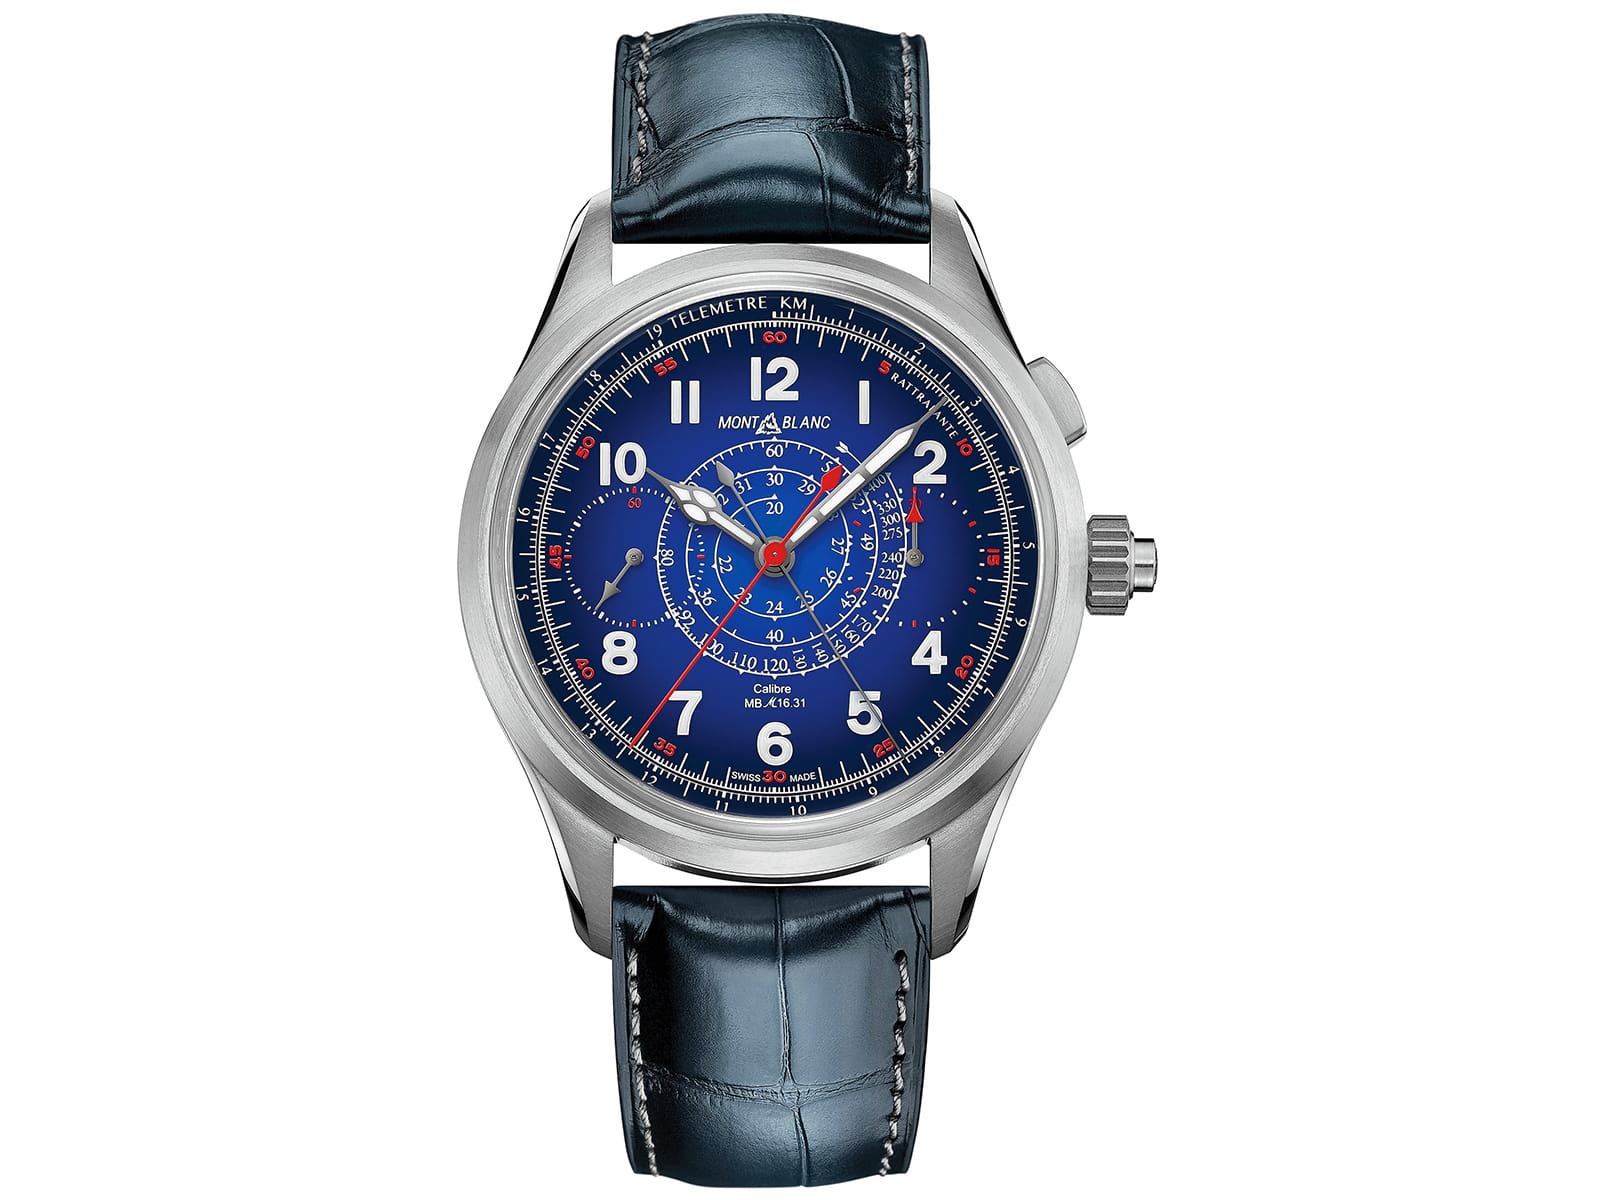 montblanc-1858-split-second-chronograph-only-watch-2019.jpg